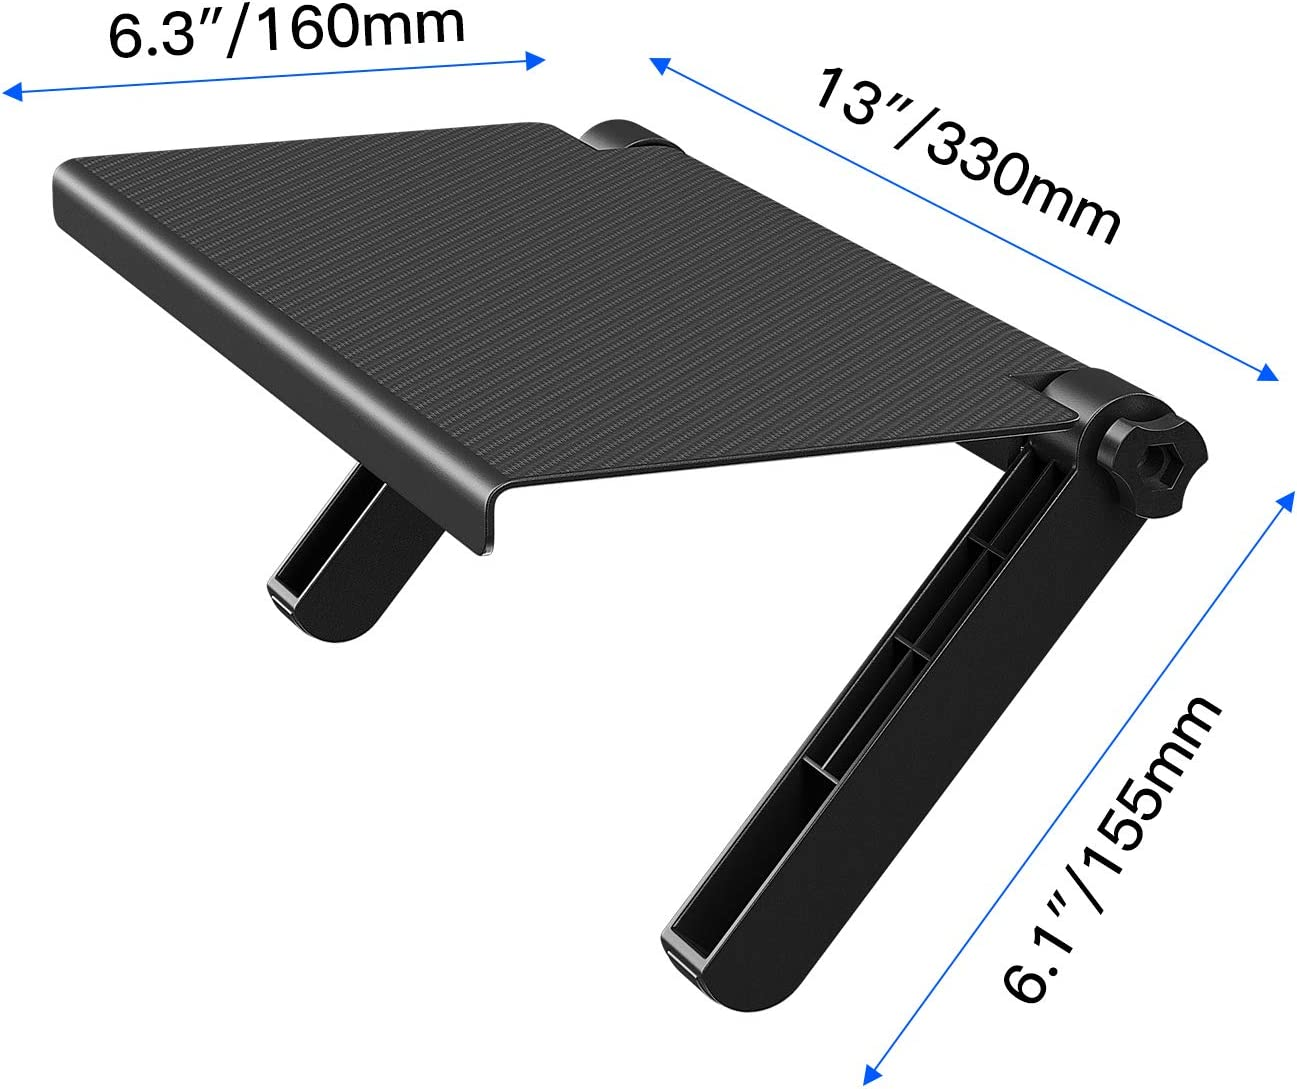 13-Inch Wide Platform Adjustable Screen Shelf Mount, Desktop Computer Monitor Streaming Cable Box TV Amazon Fire TV Top Shelf Mount- Black